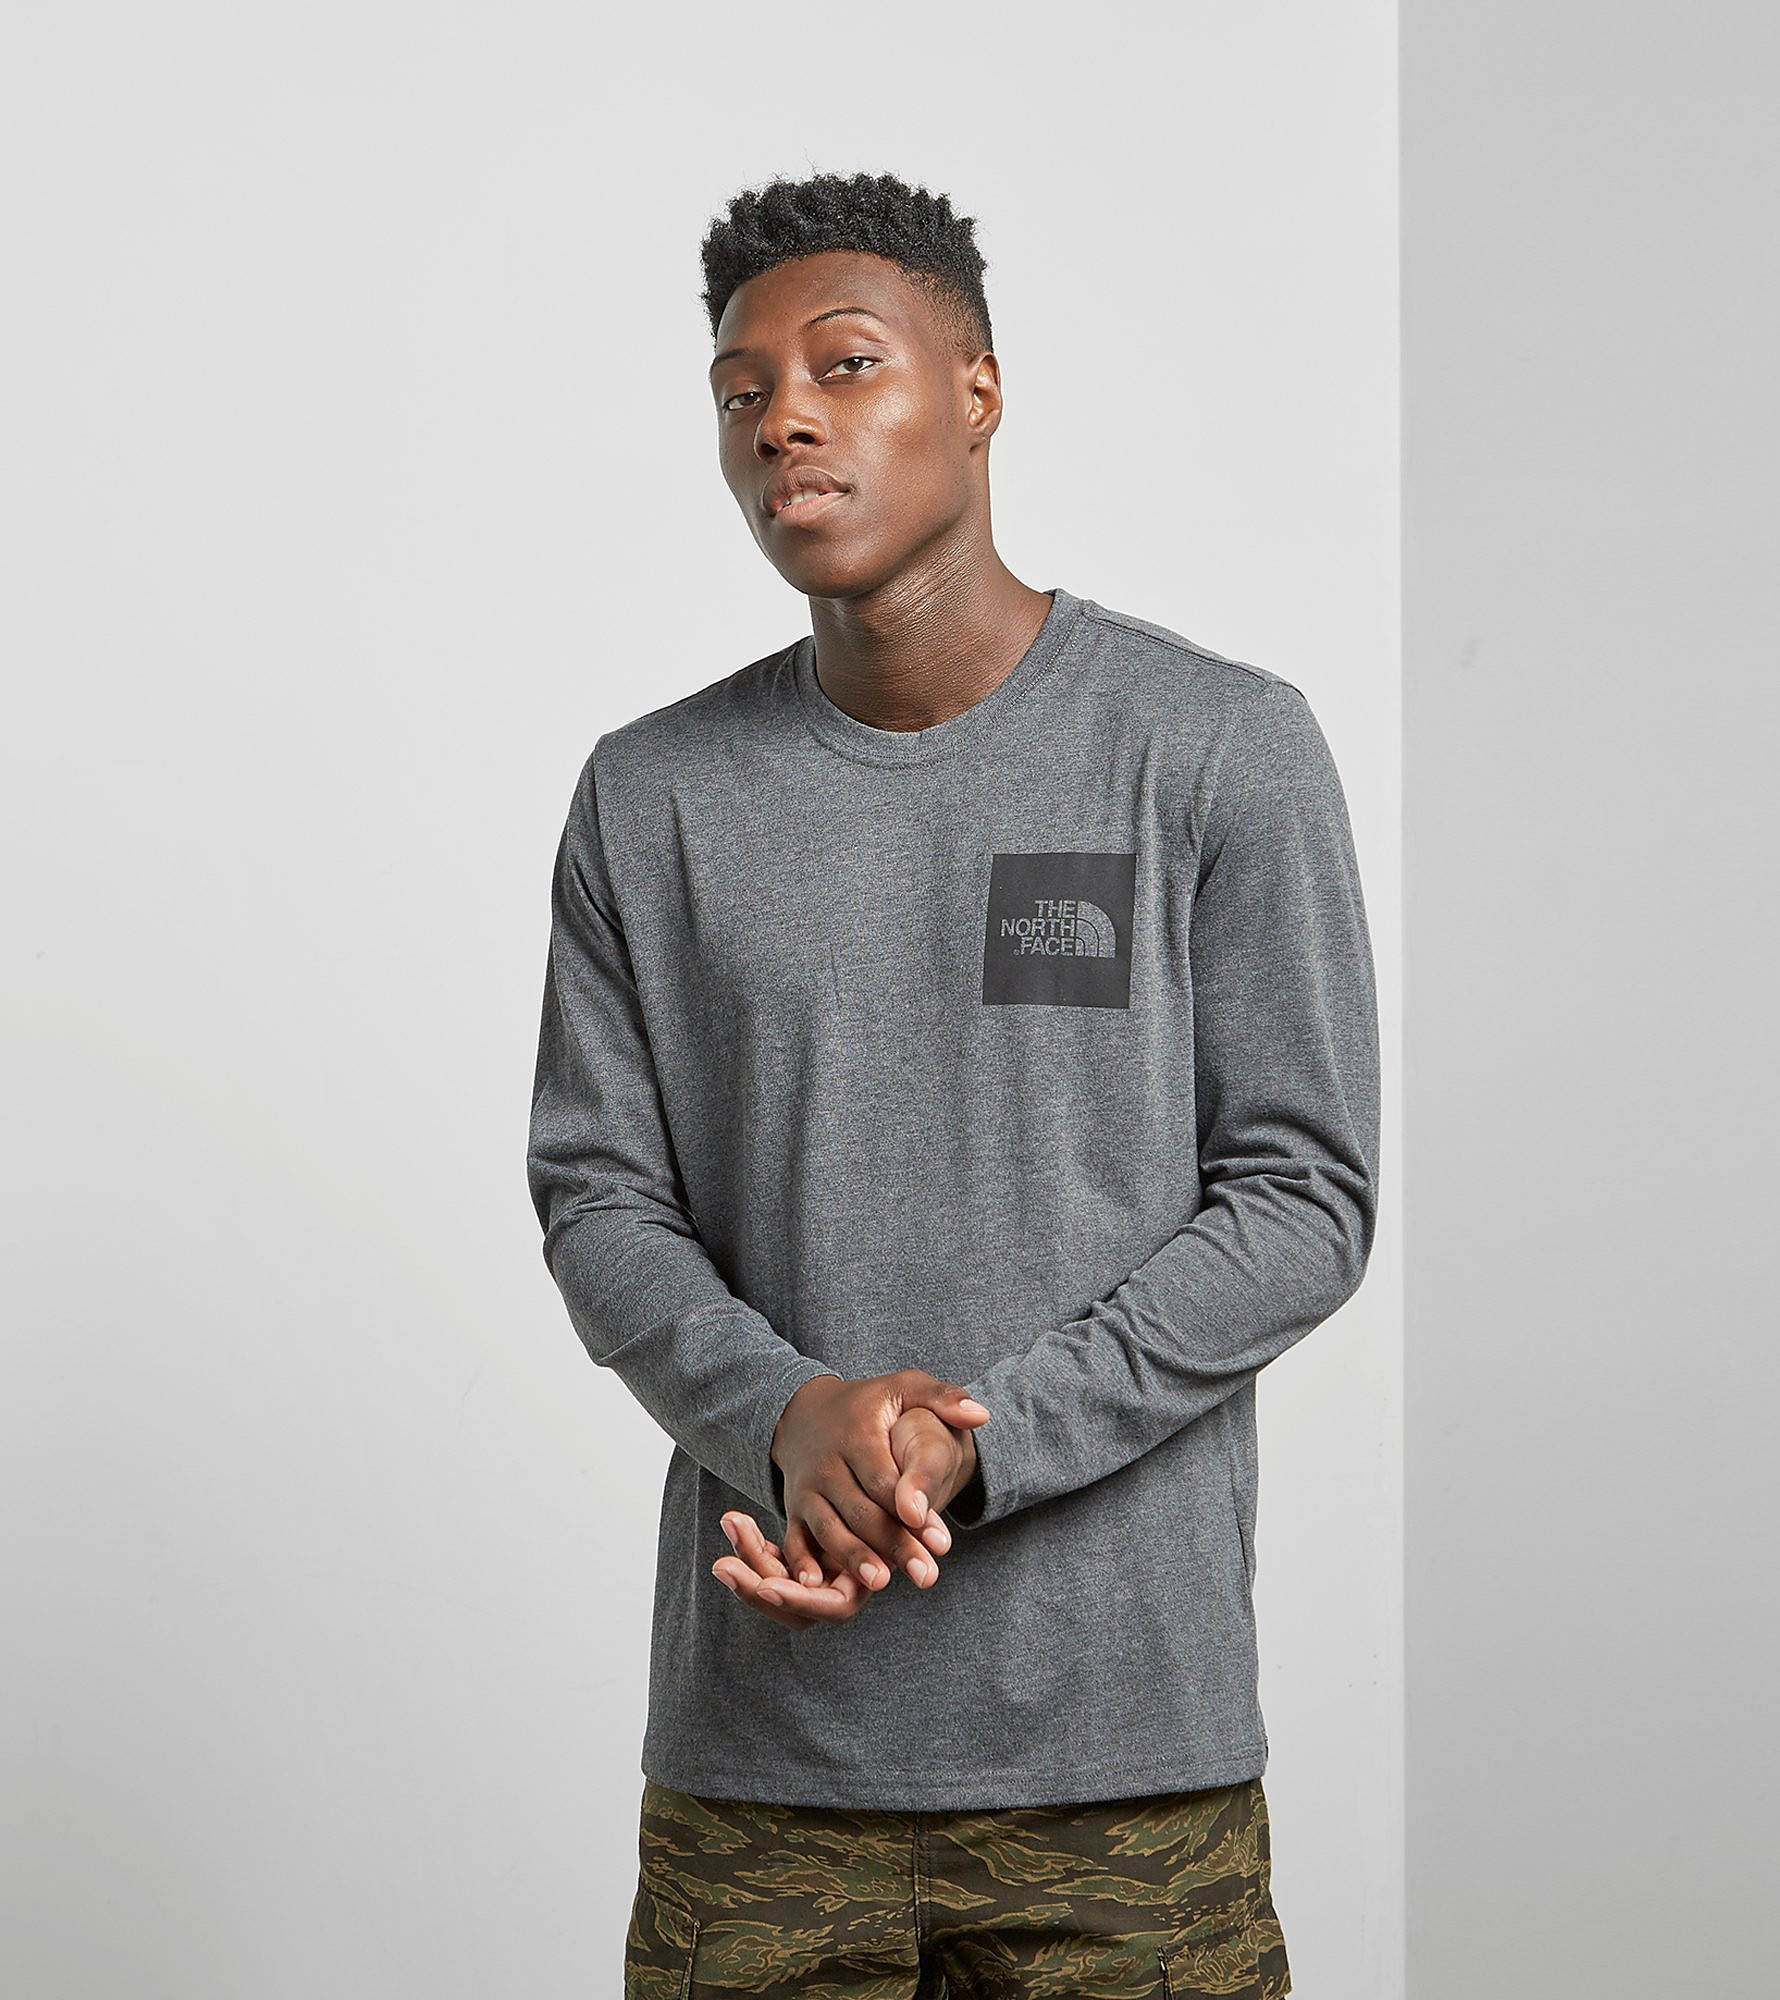 The North Face North Face Long Sleeved T-Shirt